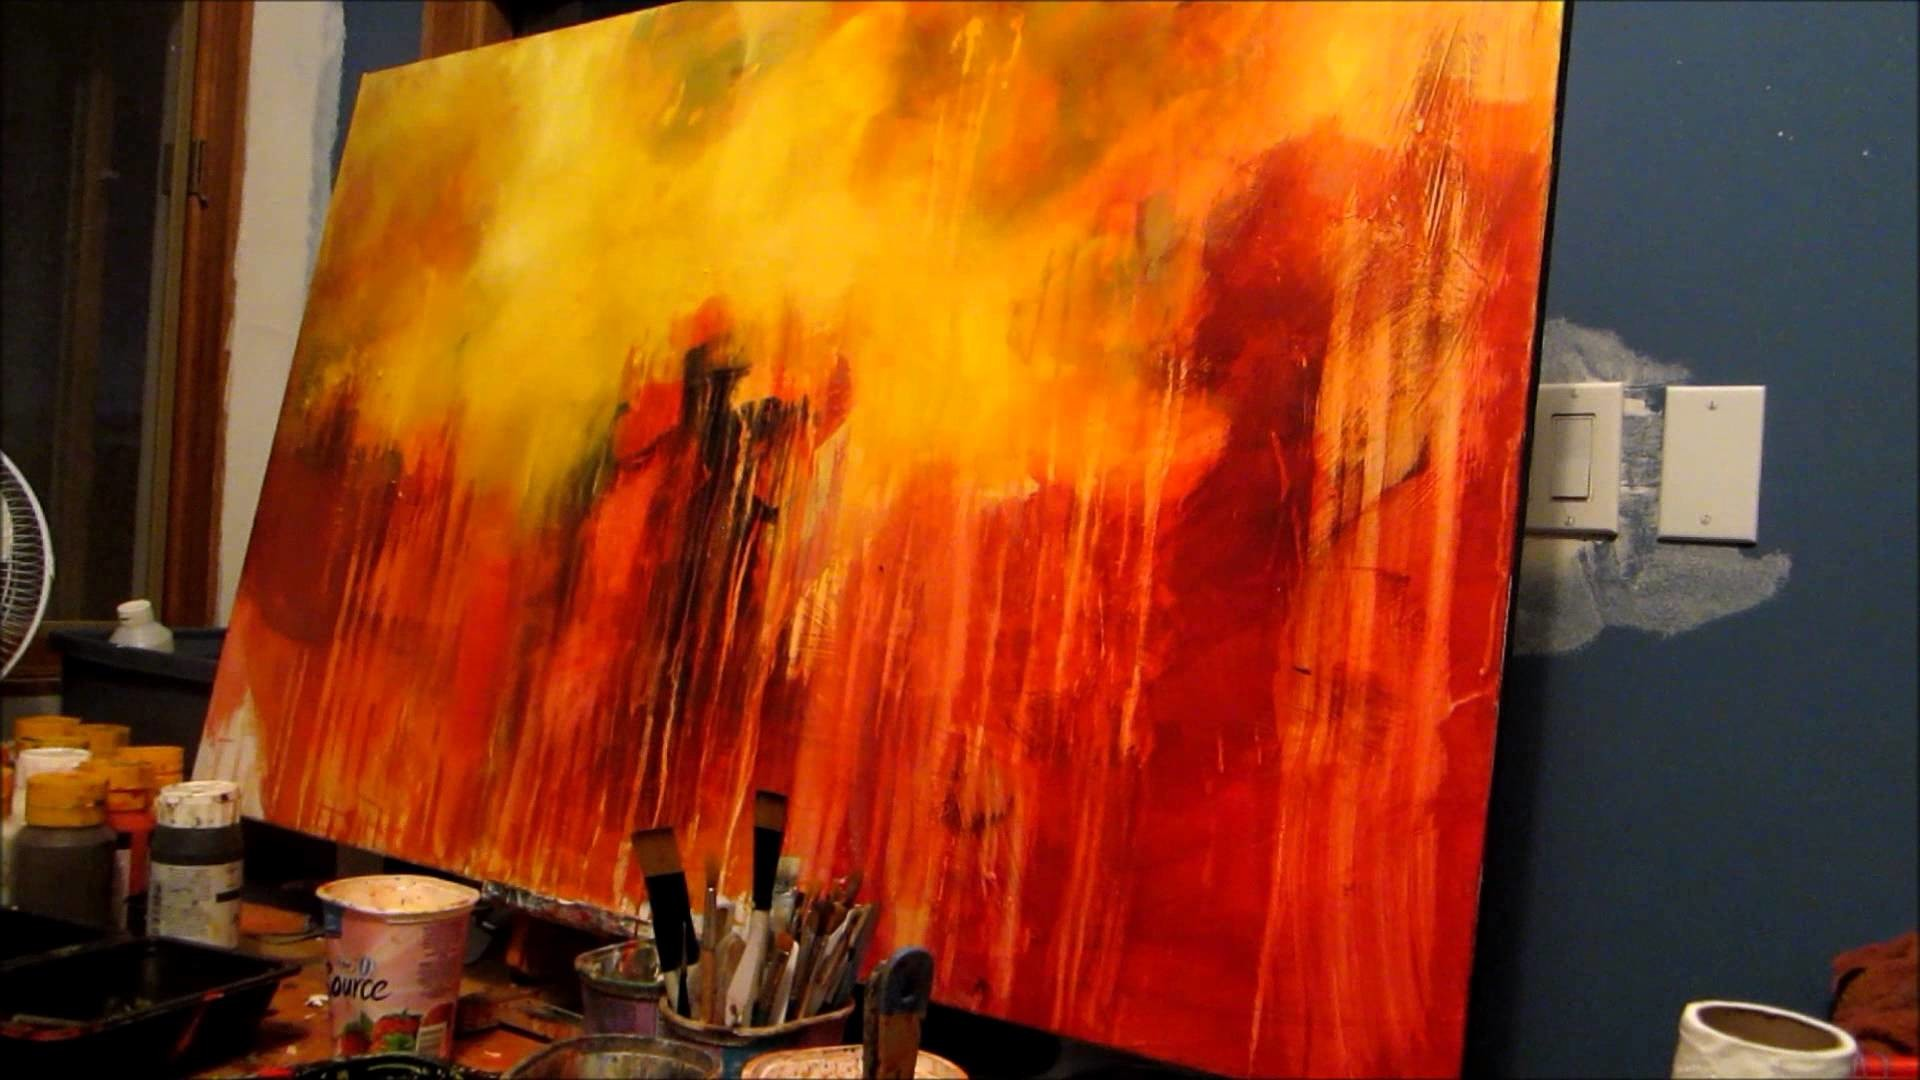 Abstract Painting Ideas Hd Widescreen 11 Hd Wallpapers - Art Acrylictechniques - HD Wallpaper